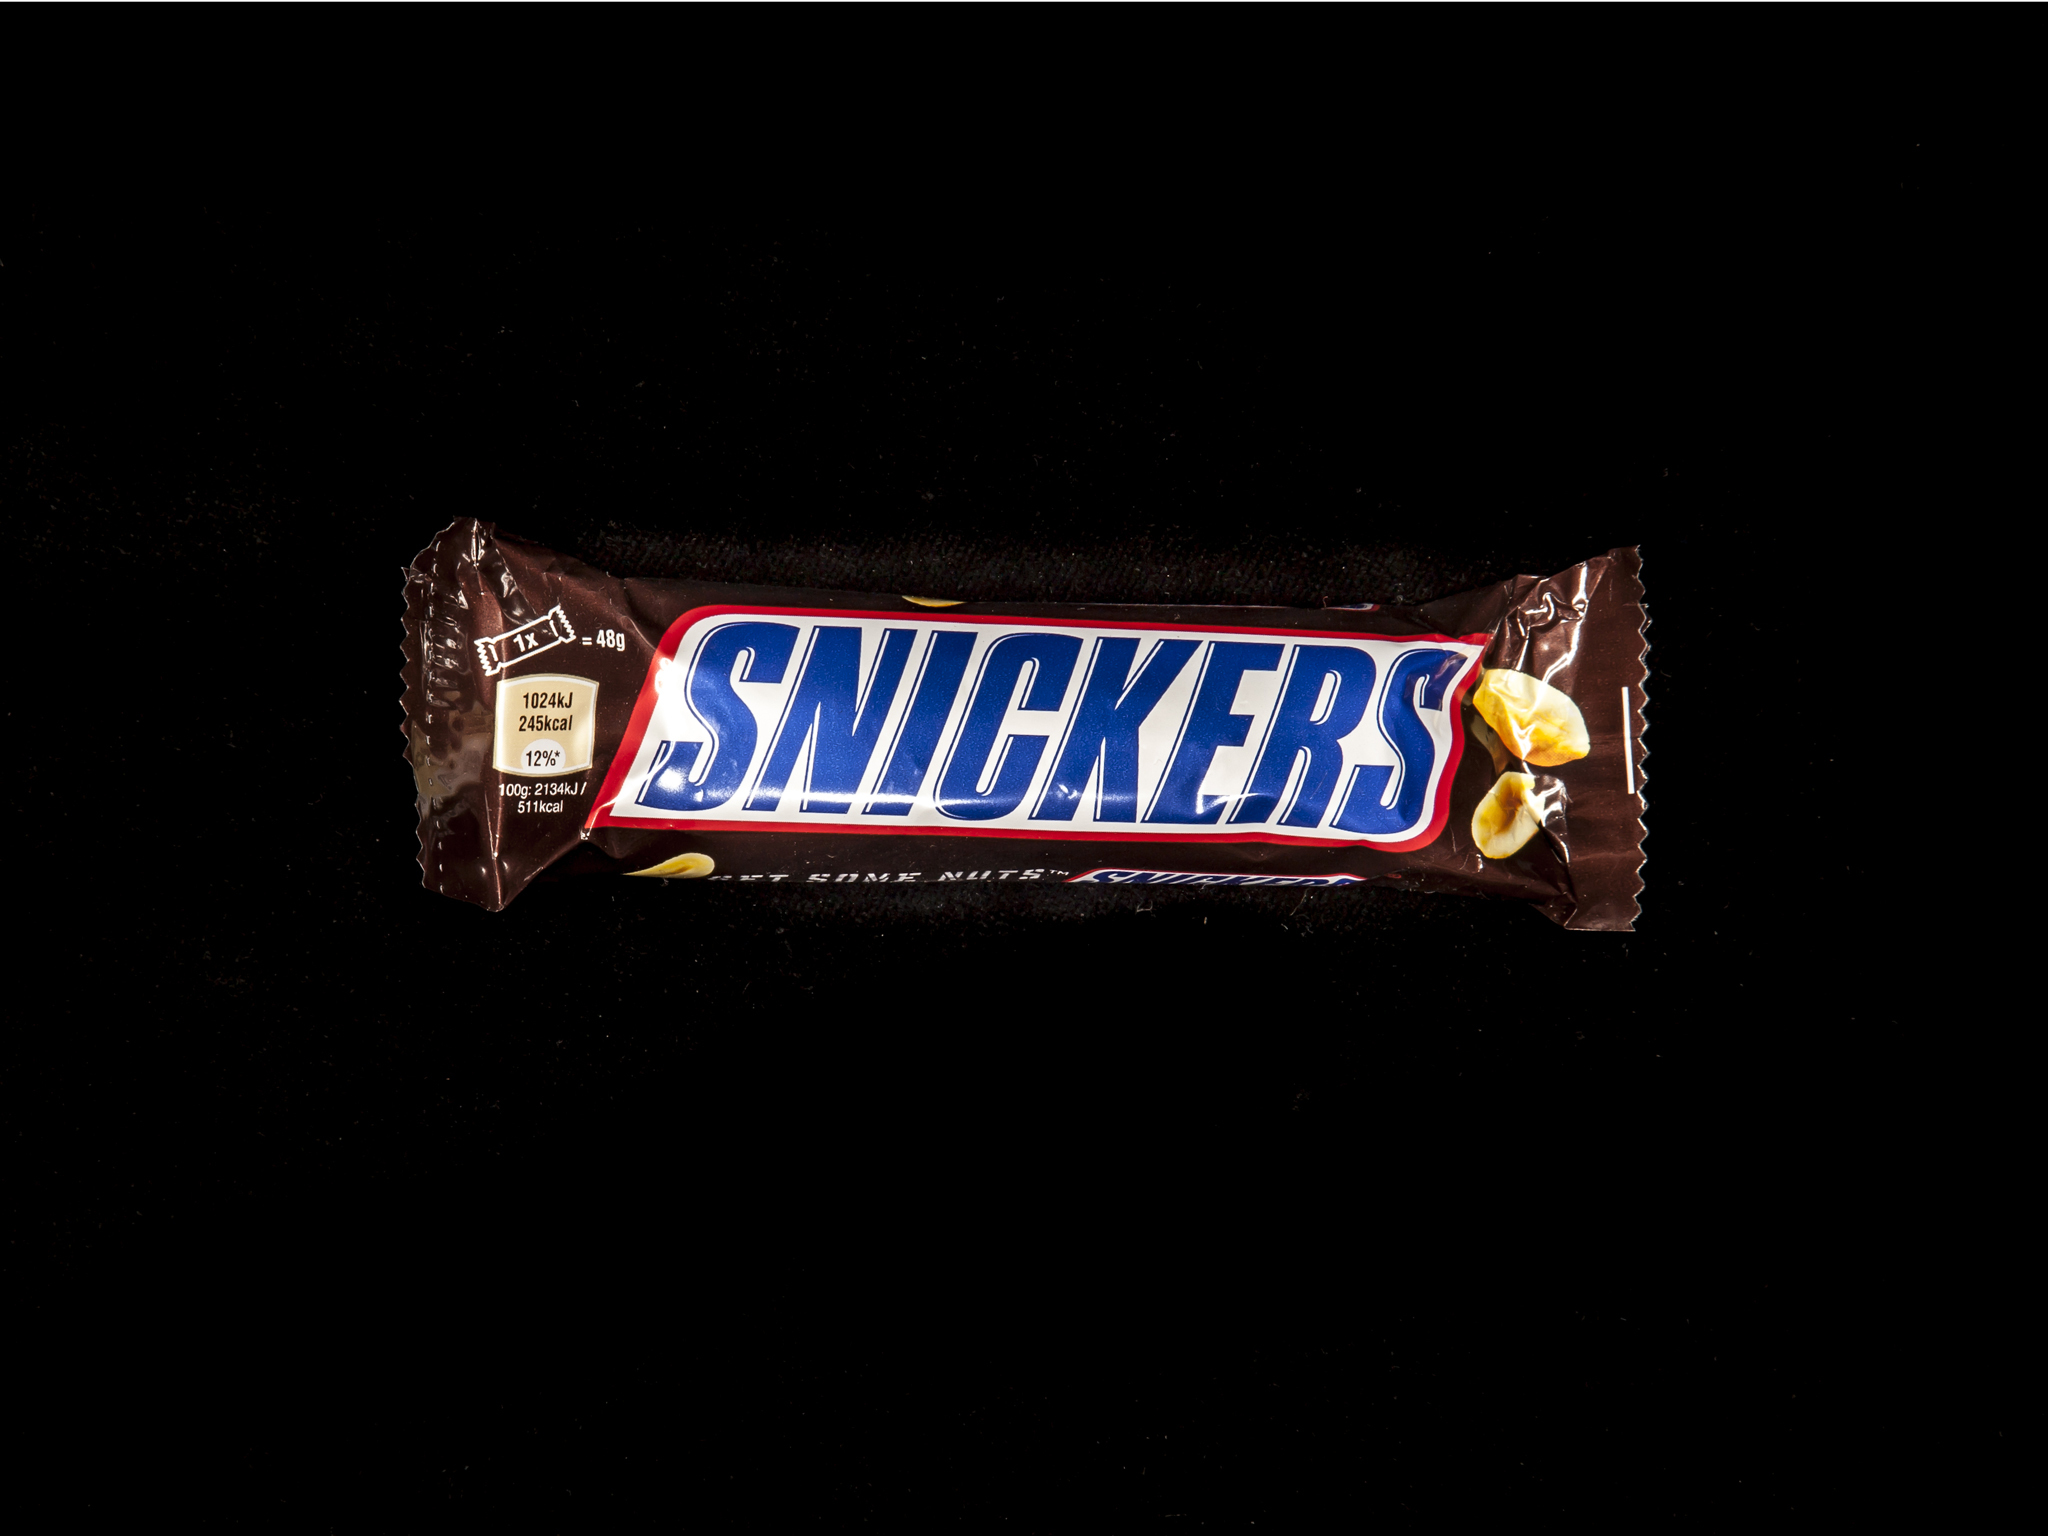 Ios 6 Wallpaper Hd Snickers Hd Wallpapers